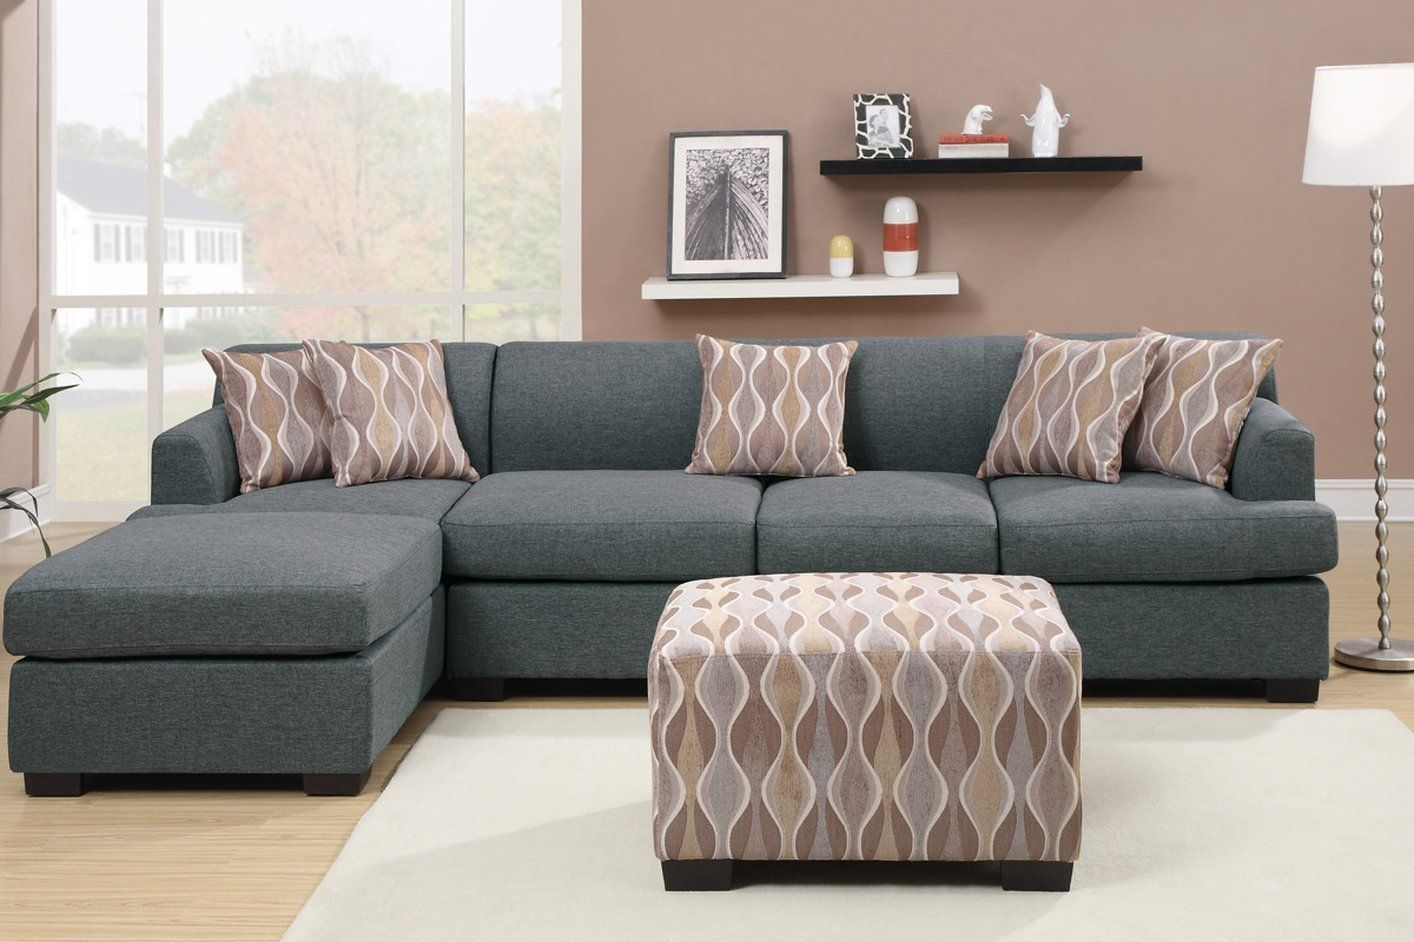 Grey Couch Set Cheap Homedecor Homedecorideas In 2020 Sectional Sofa Fabric Sectional Sofas Sectional Sofa Couch